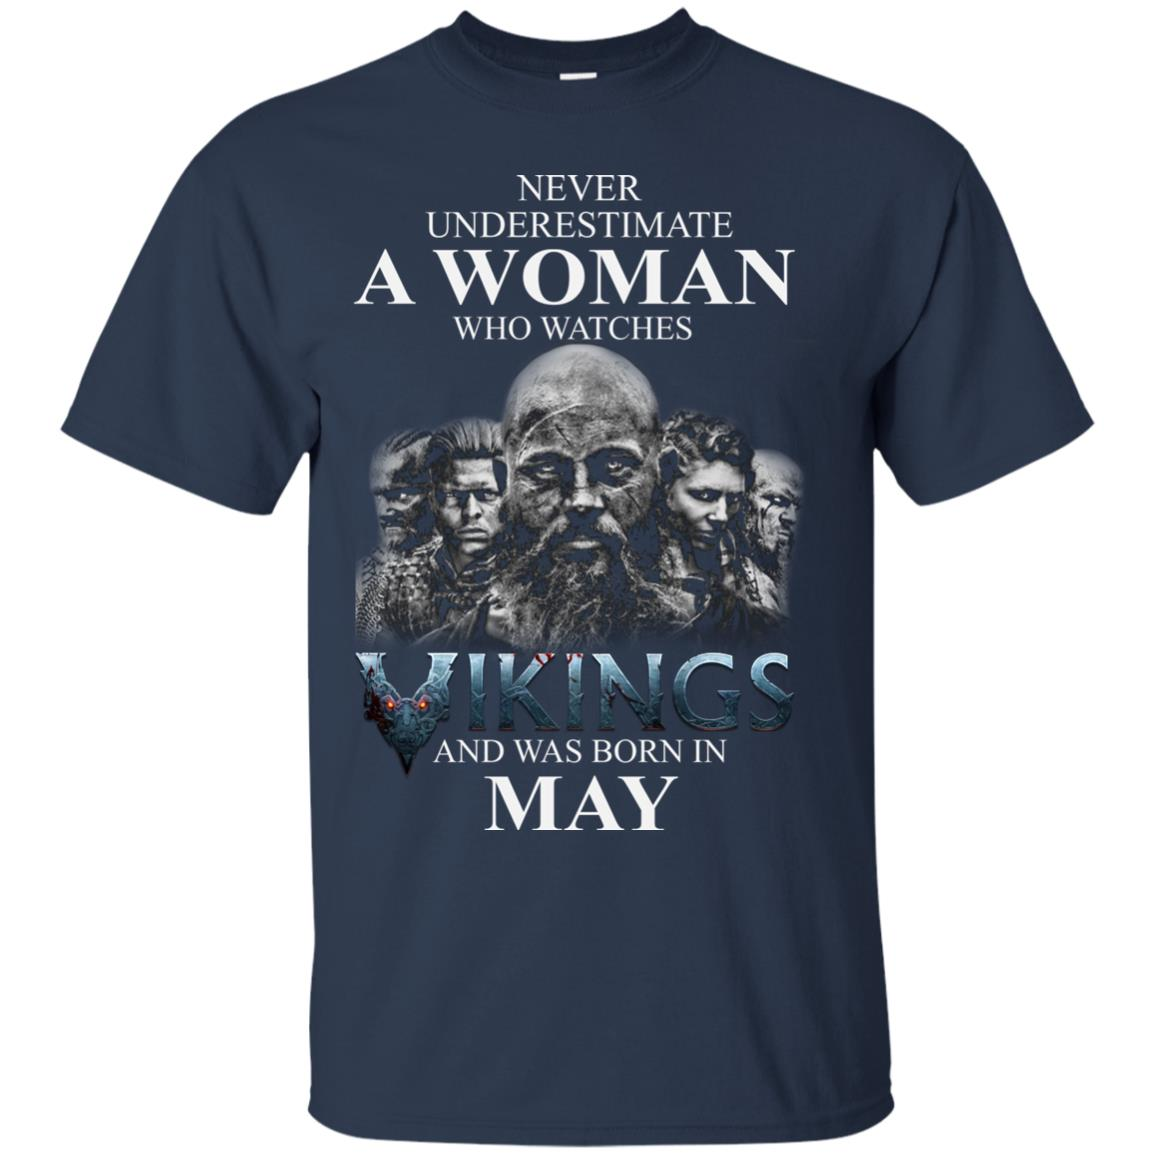 image 1304 - Never Underestimate A woman who watches Vikings and was born in May shirt